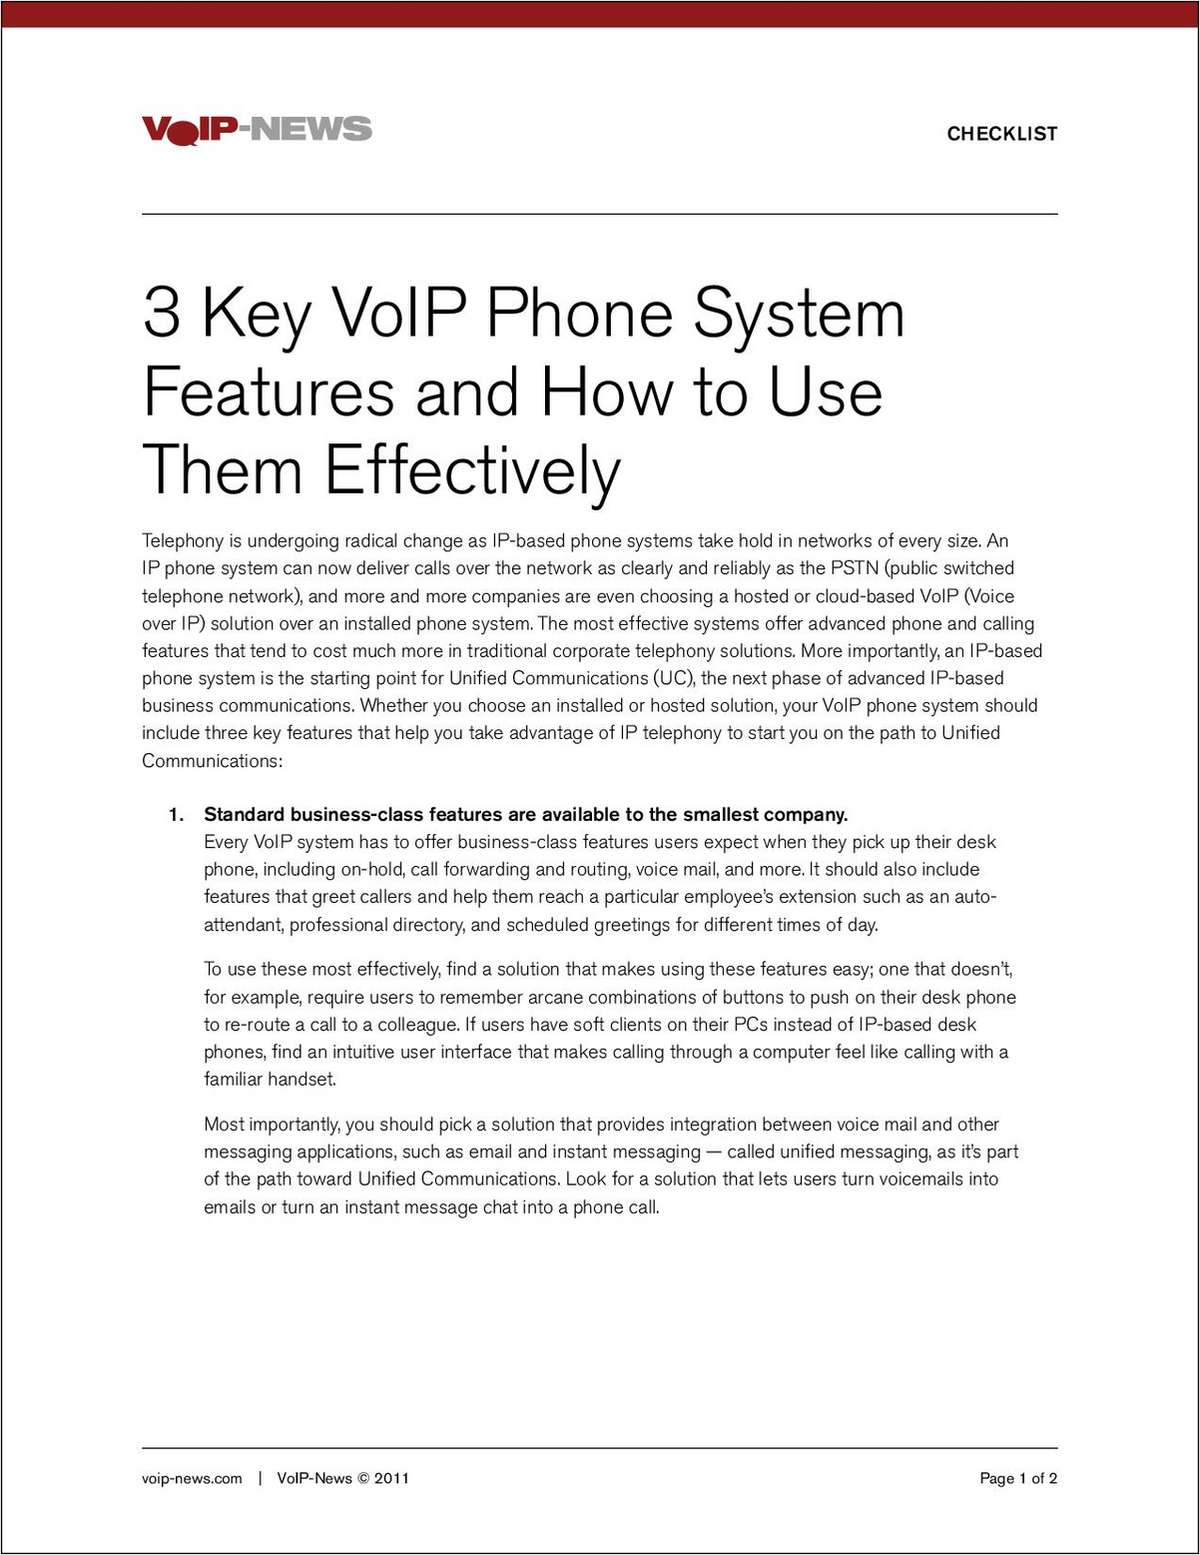 3 Key VoIP Phone System Features and How to Use Them Effectively